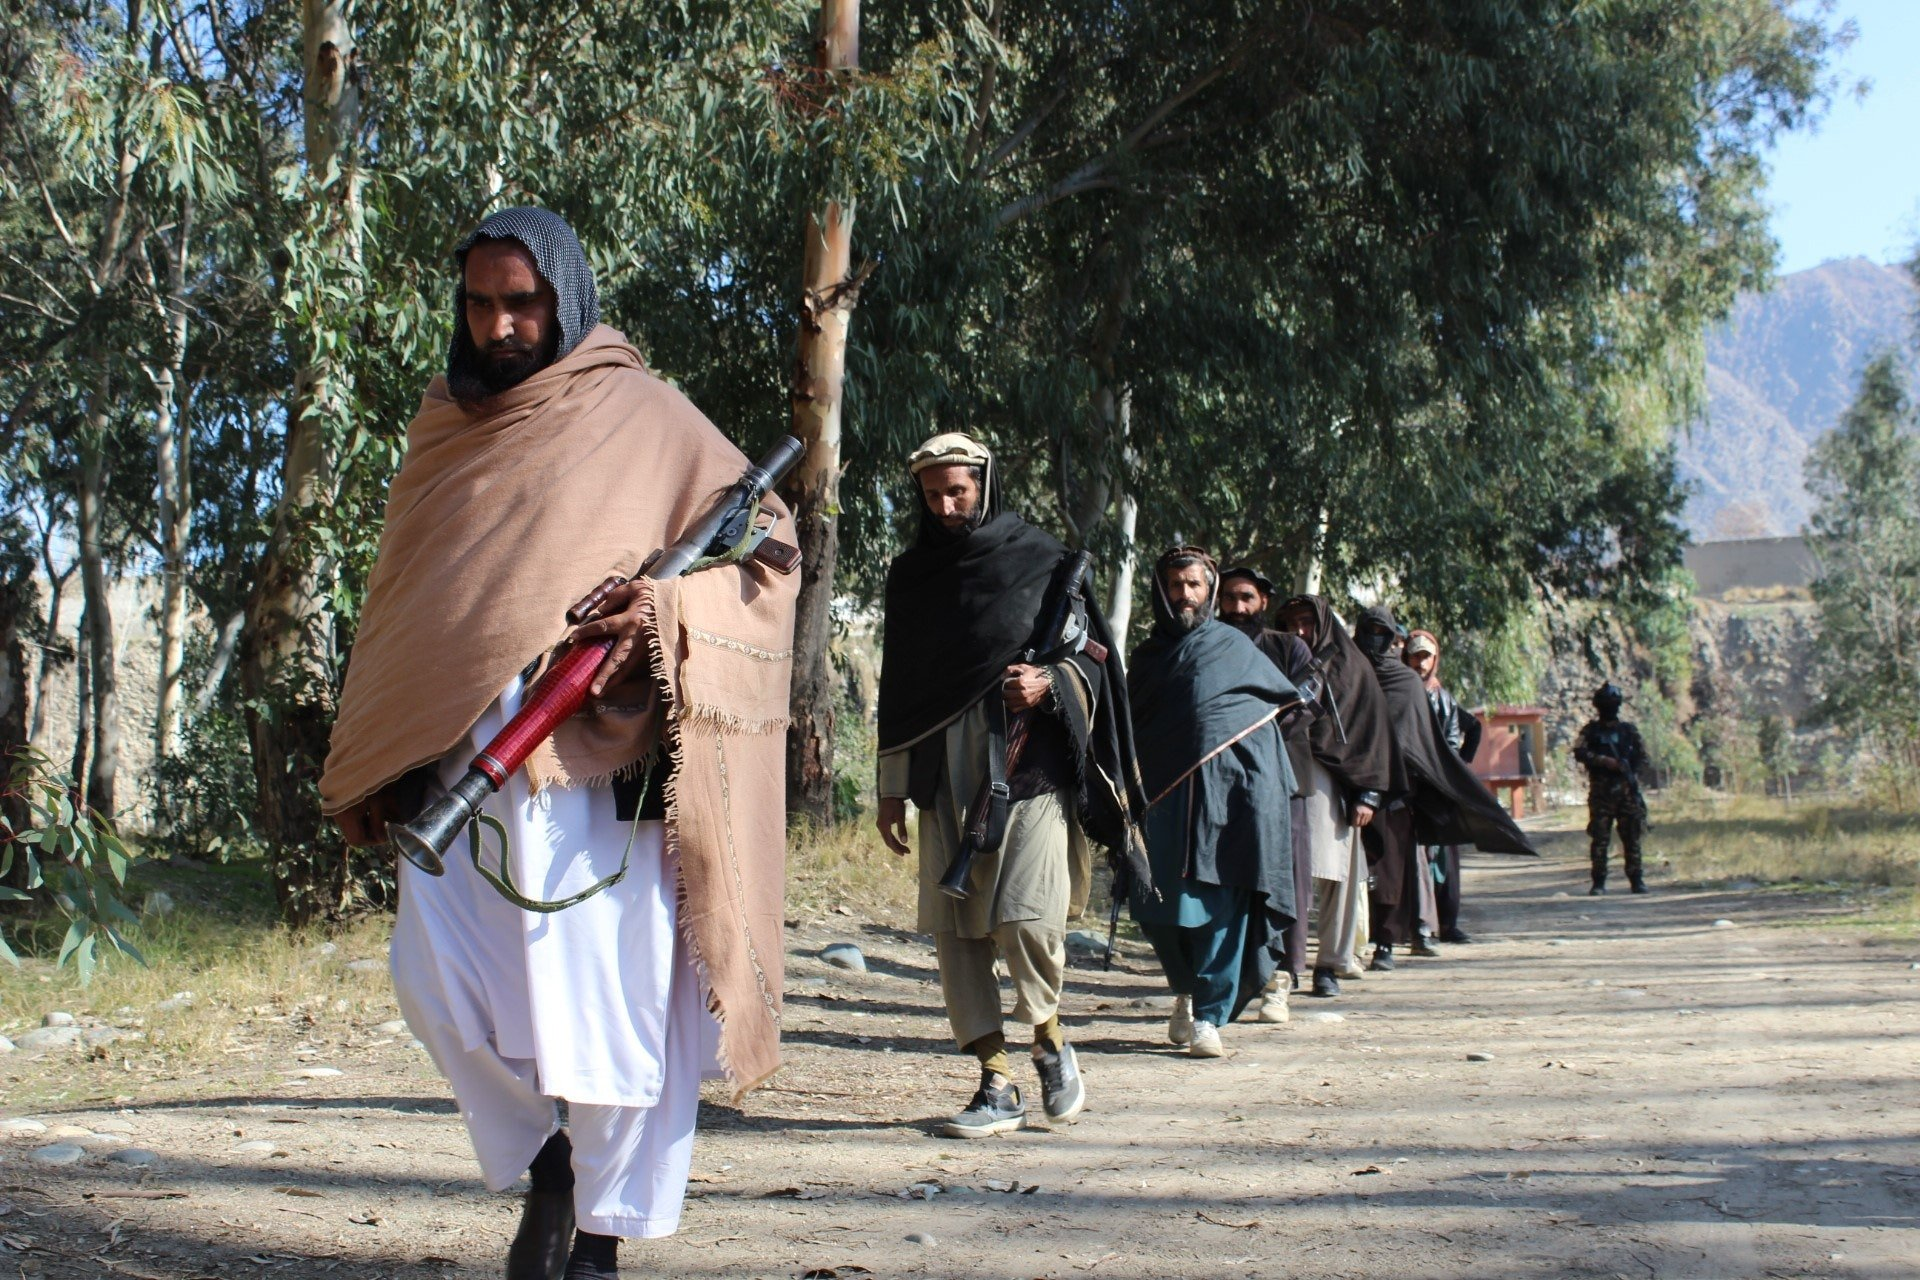 Afghanistan after the US withdrawal: The Taliban speak more moderately but their extremist rule hasnt evolved in 20 years Photo